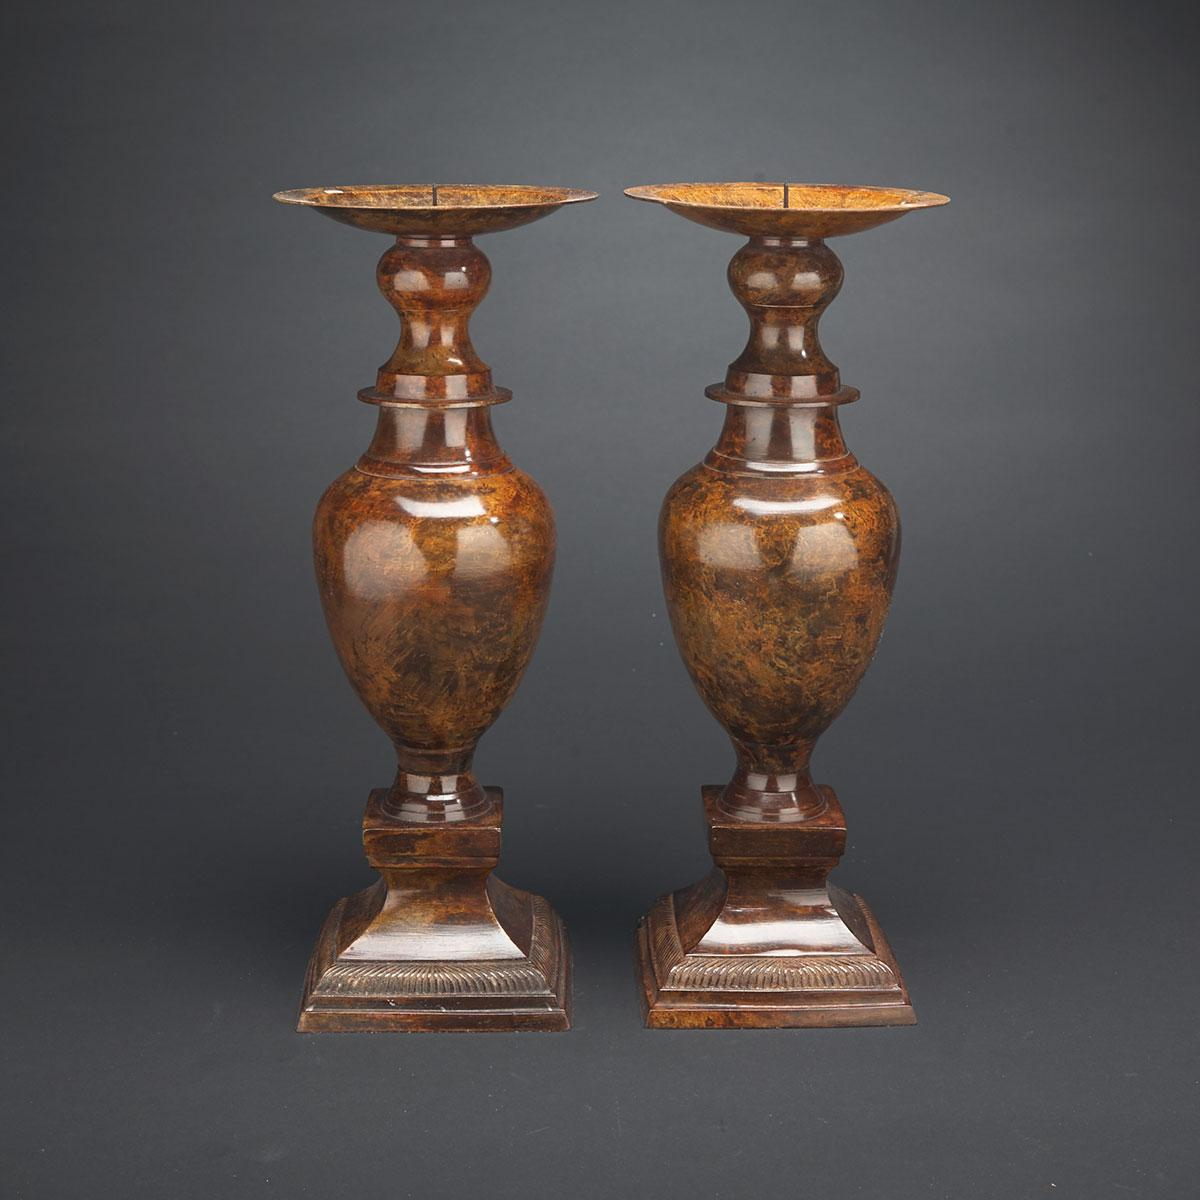 Pair of Contemporary Lacquered Metal Baluster Form Prickets, 20th century